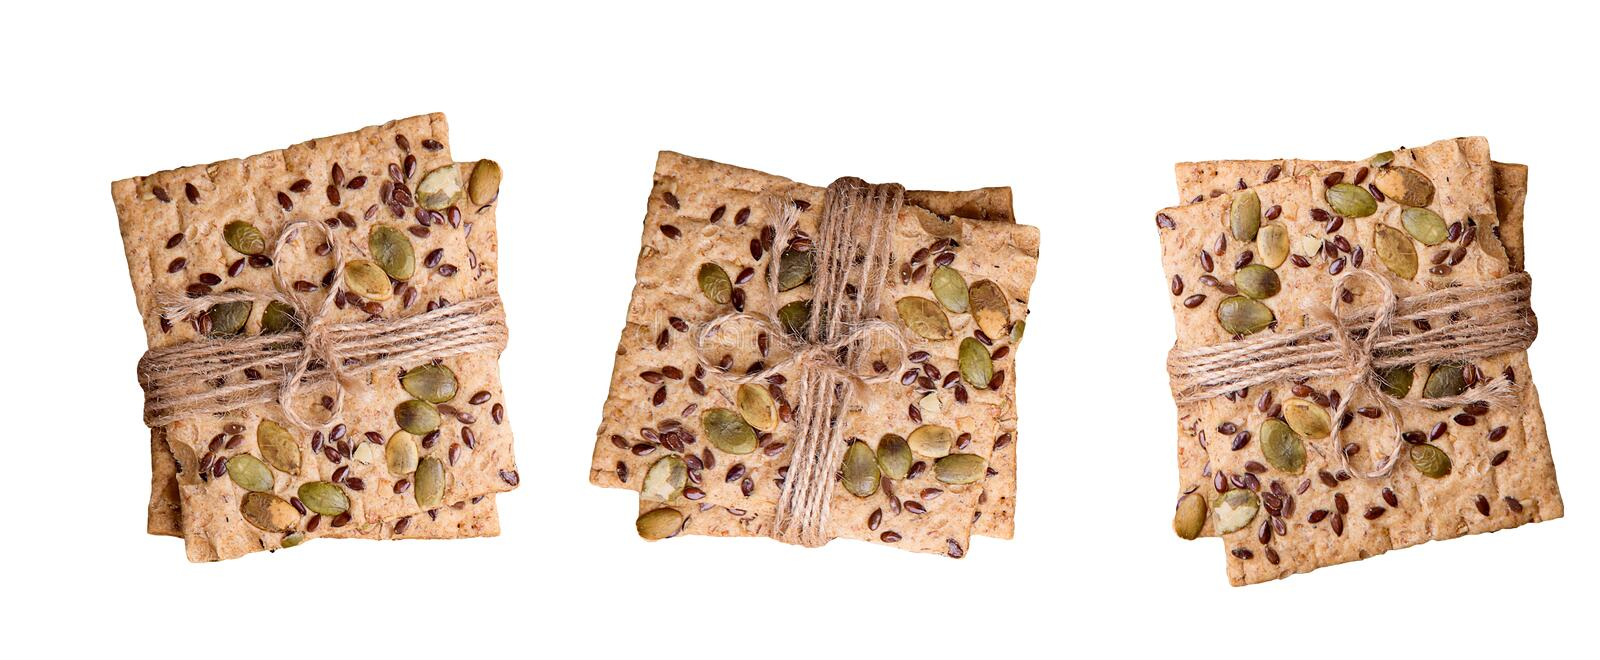 Dietary bread. Diet and health. Concept royalty free stock photo